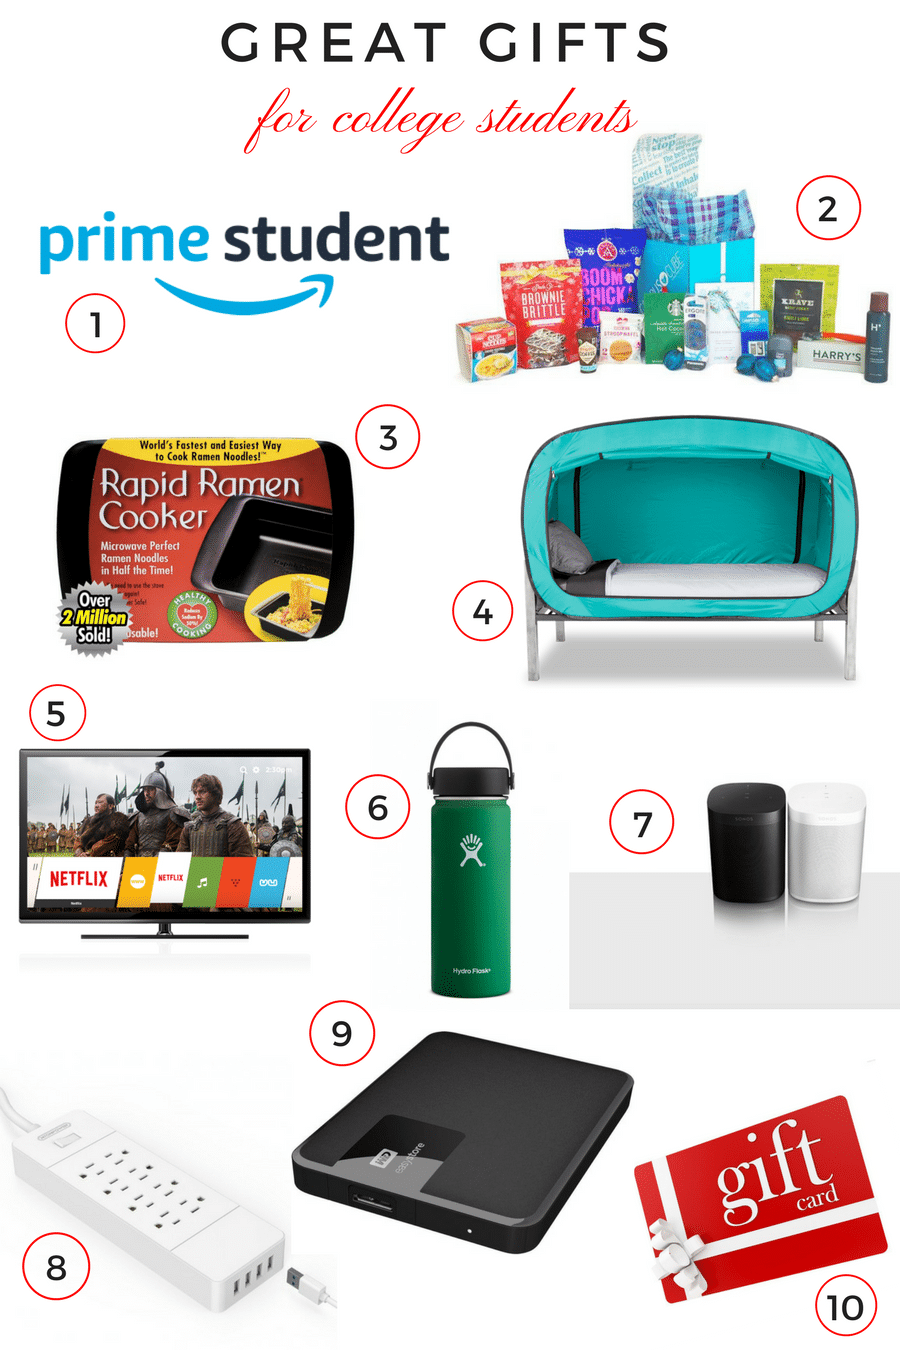 Great Gifts for College Students